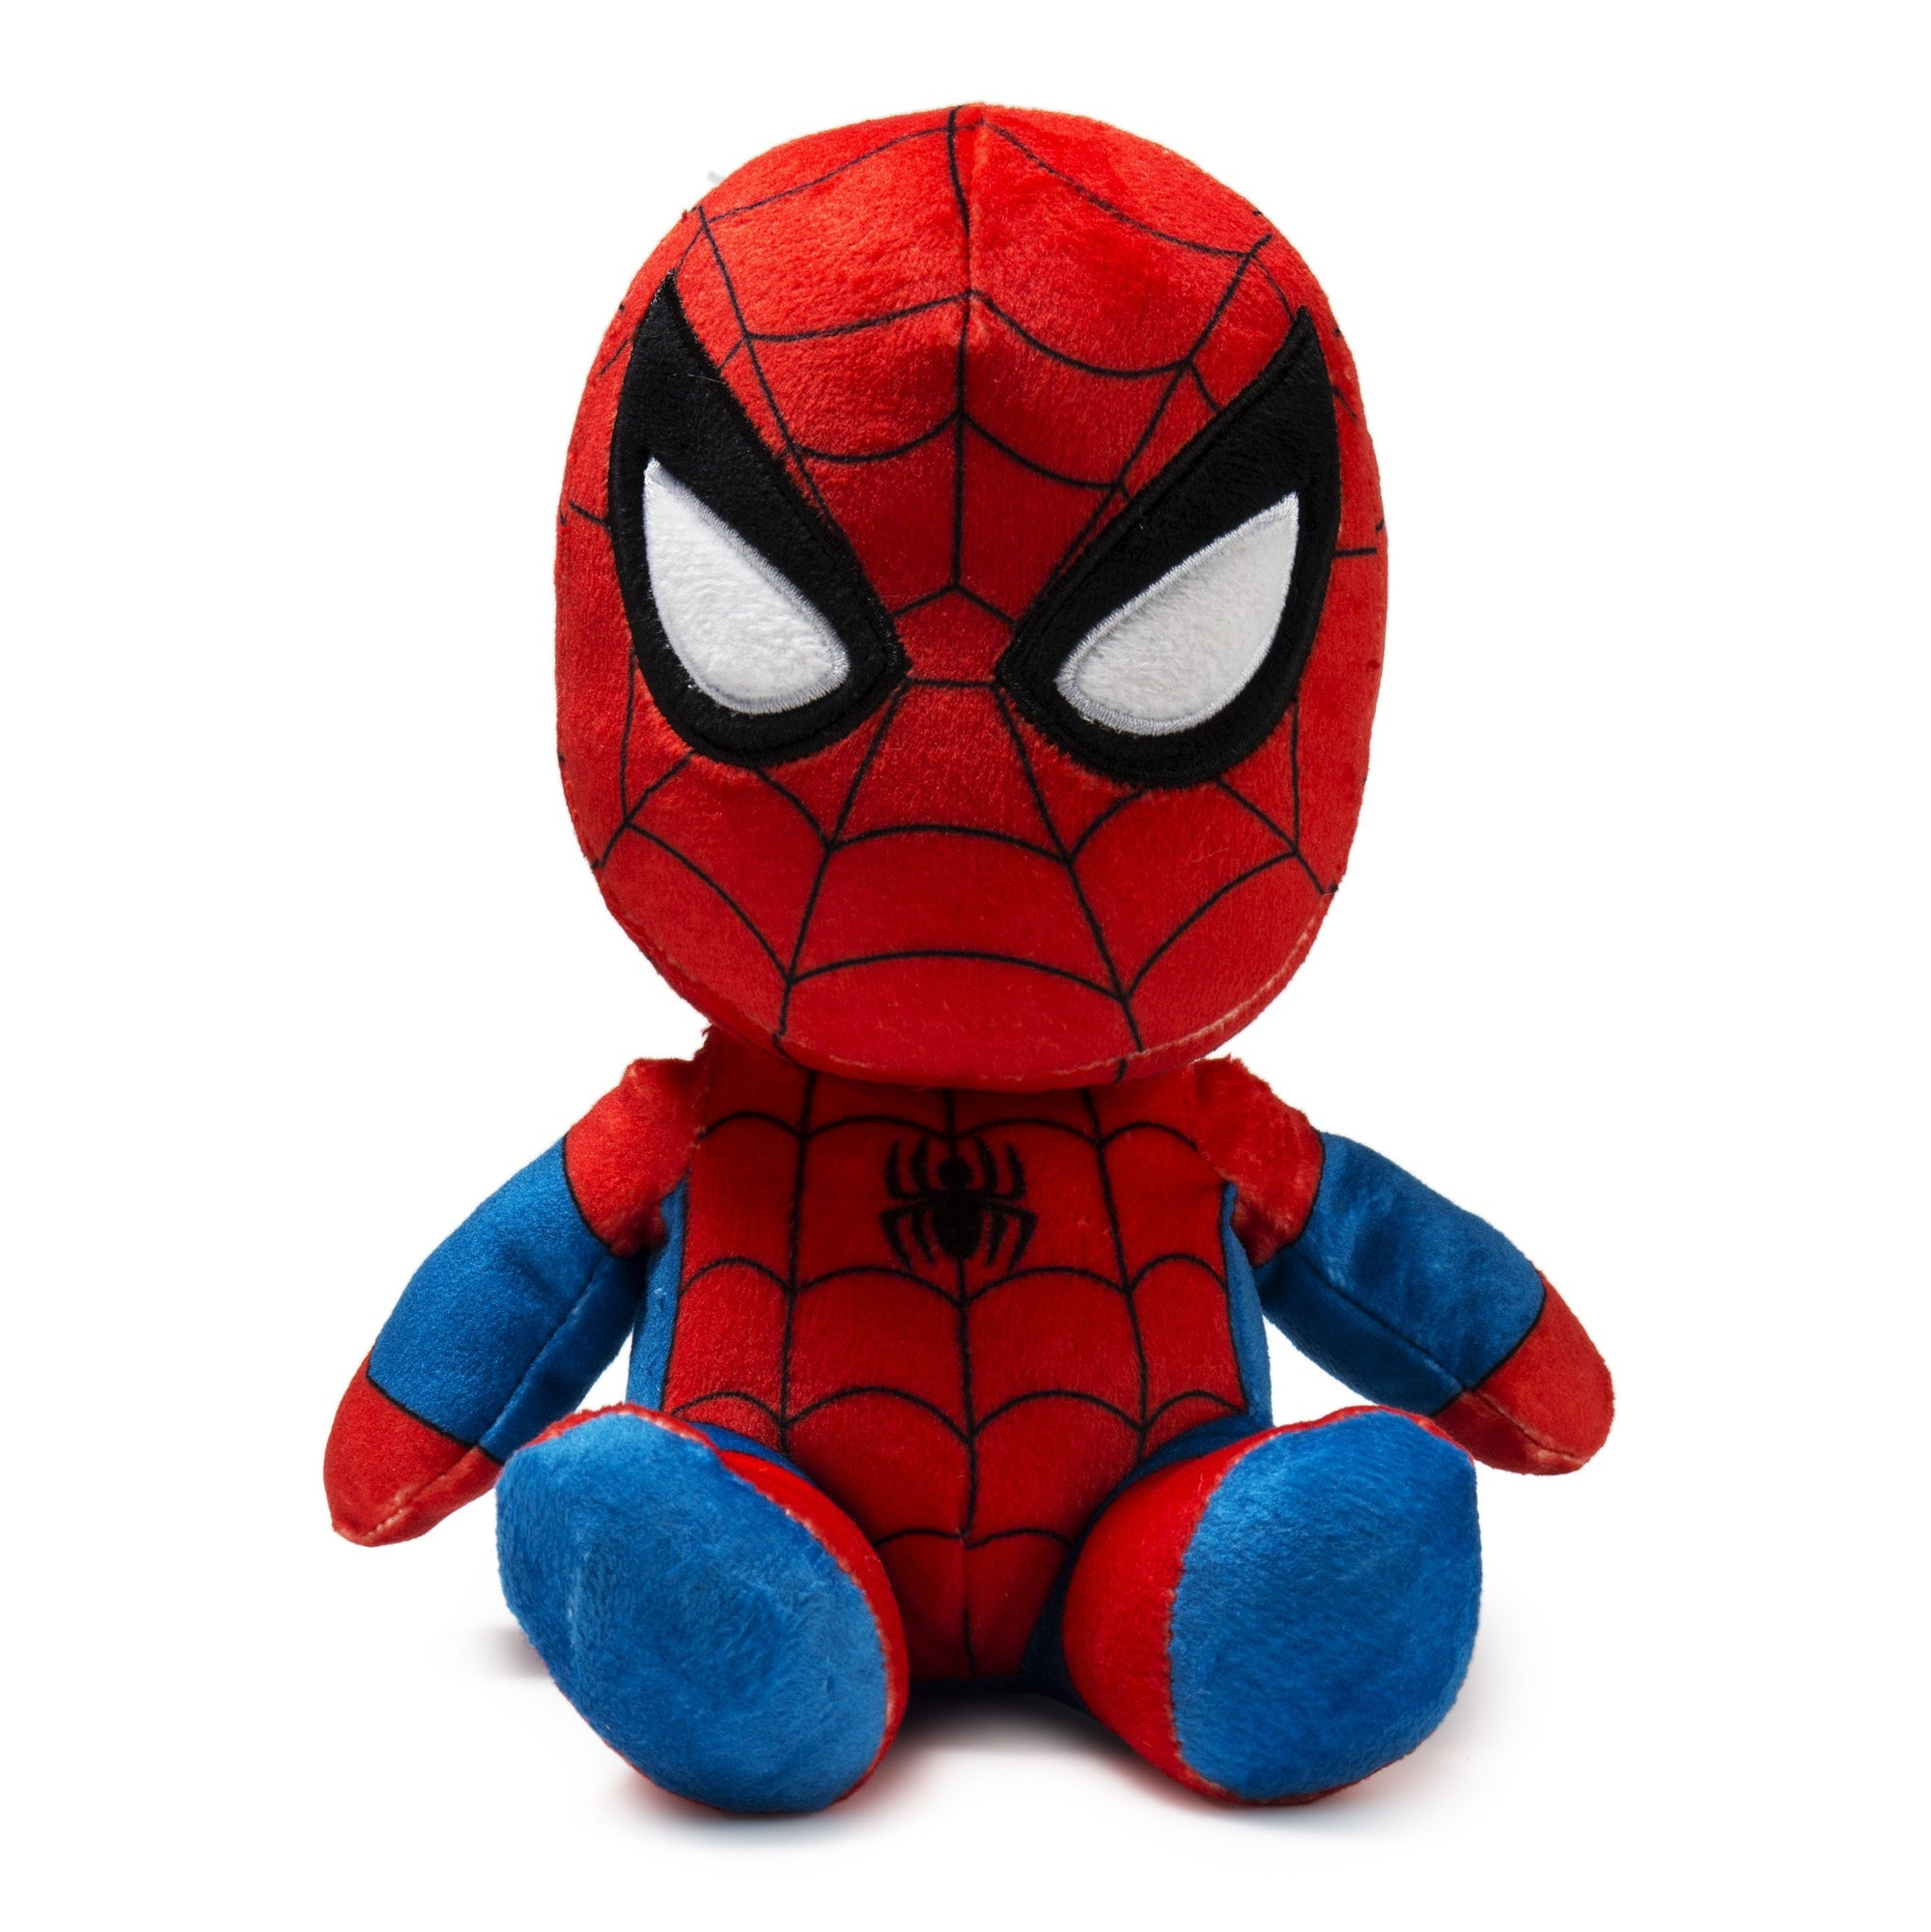 Marvel Spider-Man Phunny Plush by Kidrobot - Kidrobot - Designer Art Toys